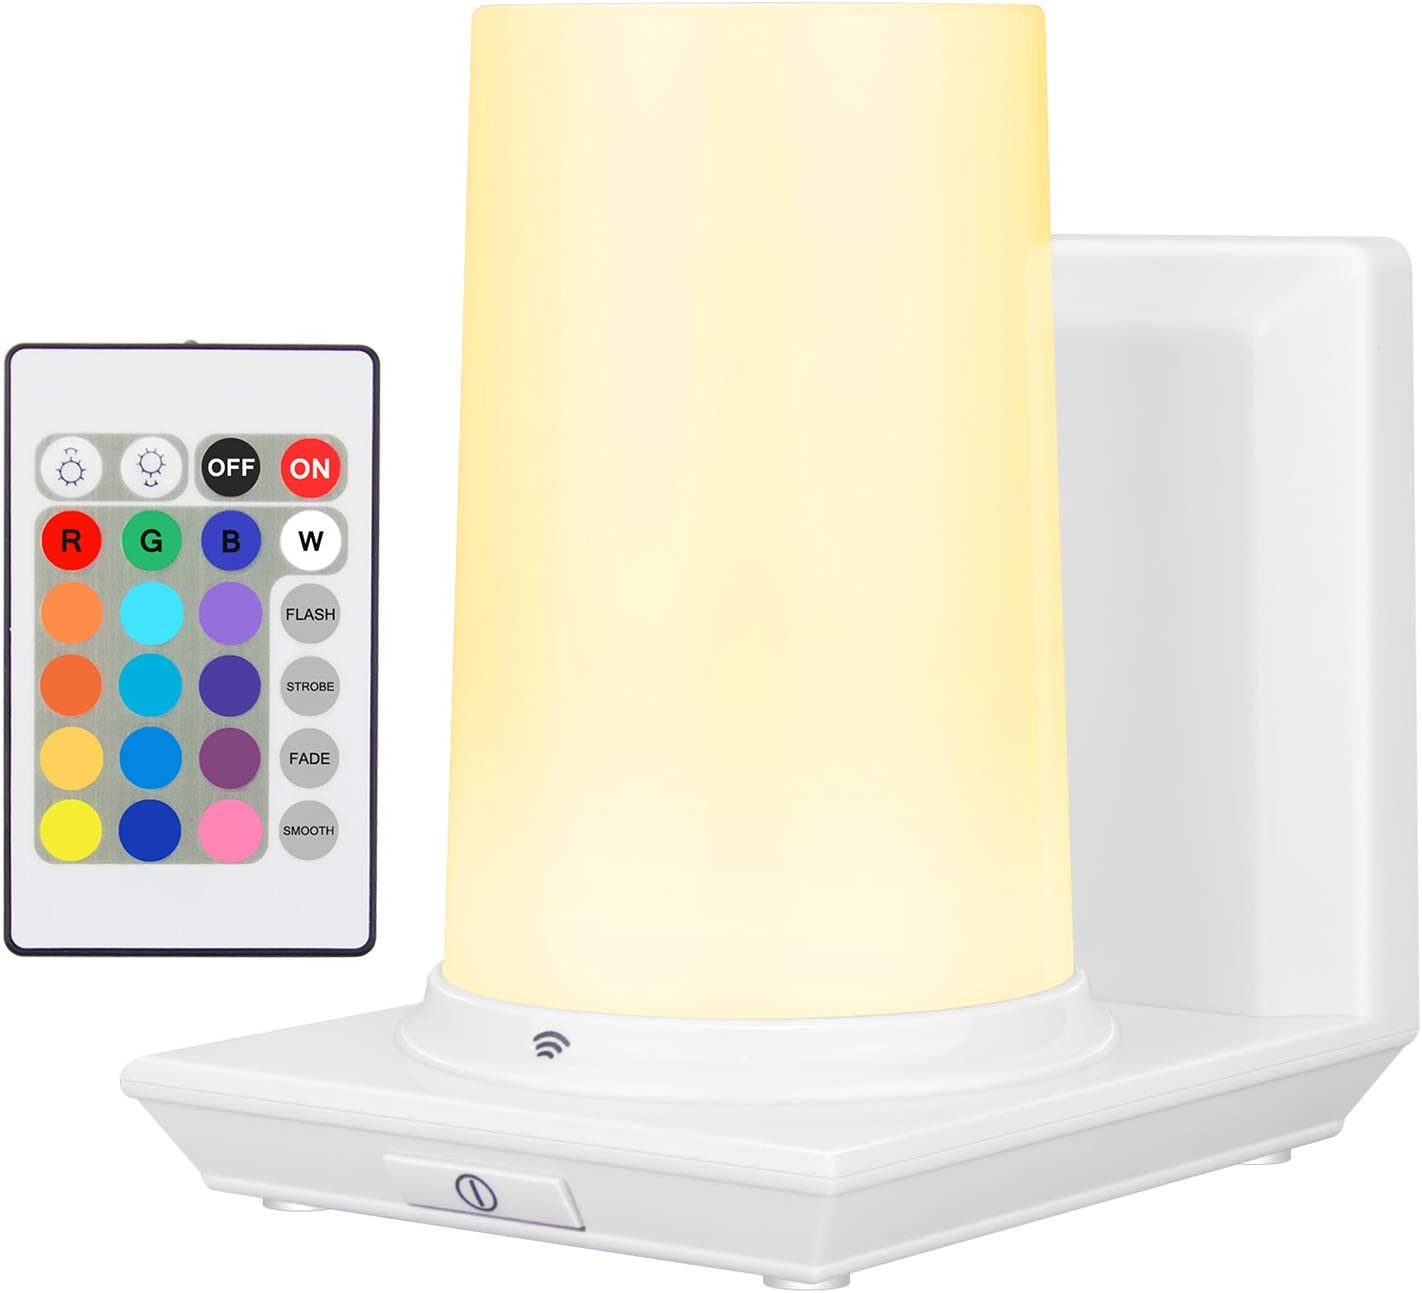 HONWELL Wall Lamp Wireless Battery Operated Wall Sconce for Bedroom Multi Color LED Wall Light for Room Decor Mood Lighting, Stick on RGB Lights for Bedroom, 16 Colors, Remote Controlled